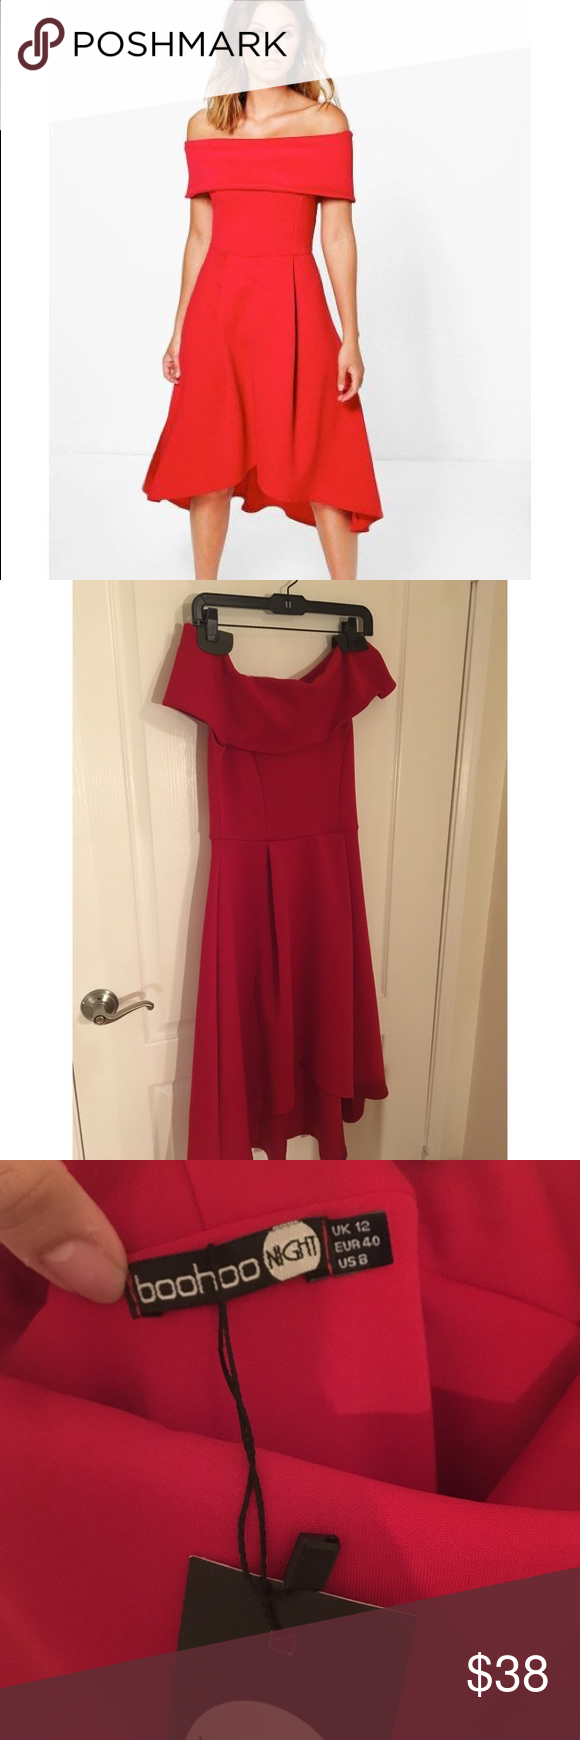 Red off shoulder midi dress nwt model pictures true red and midi